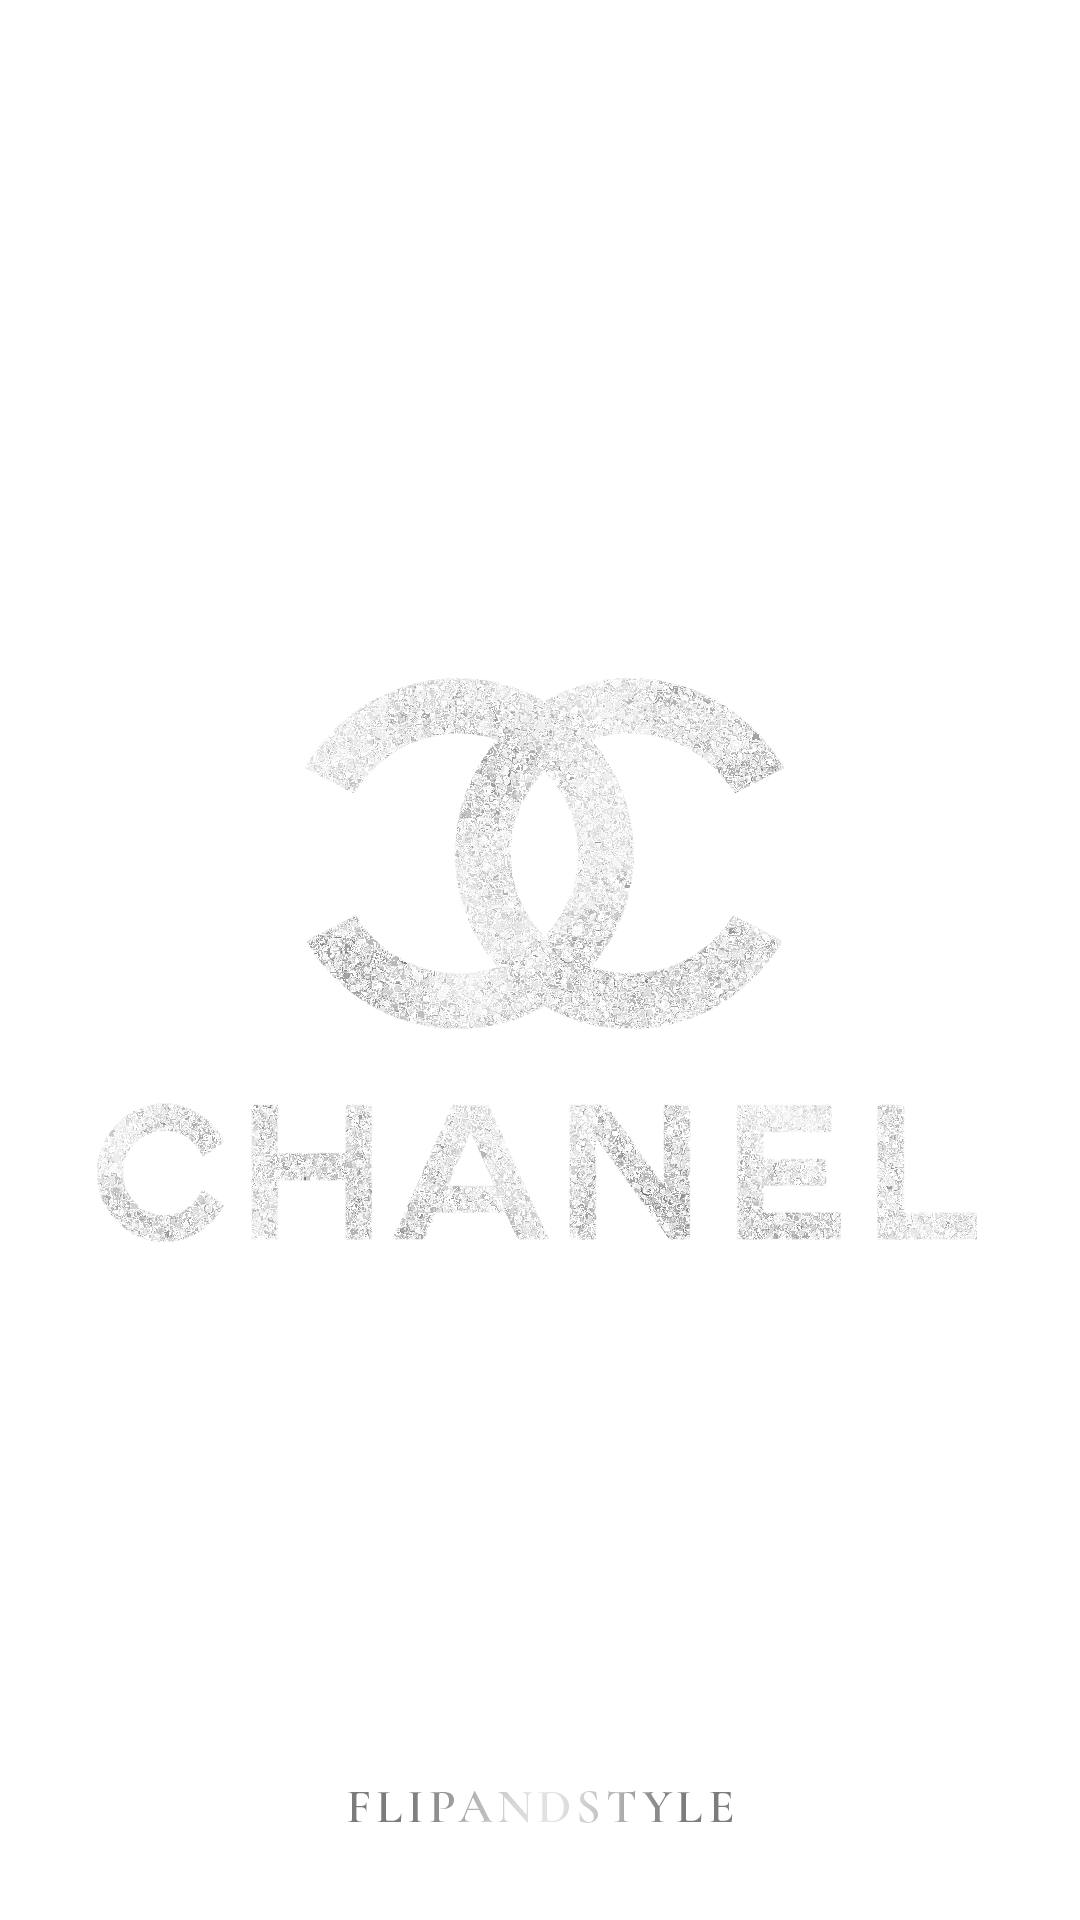 Free Designer Wallpapers Phone Backgrounds By Flipandstyle Chanel Wallpapers Designer Iphone Wallpaper Louis Vuitton Iphone Wallpaper